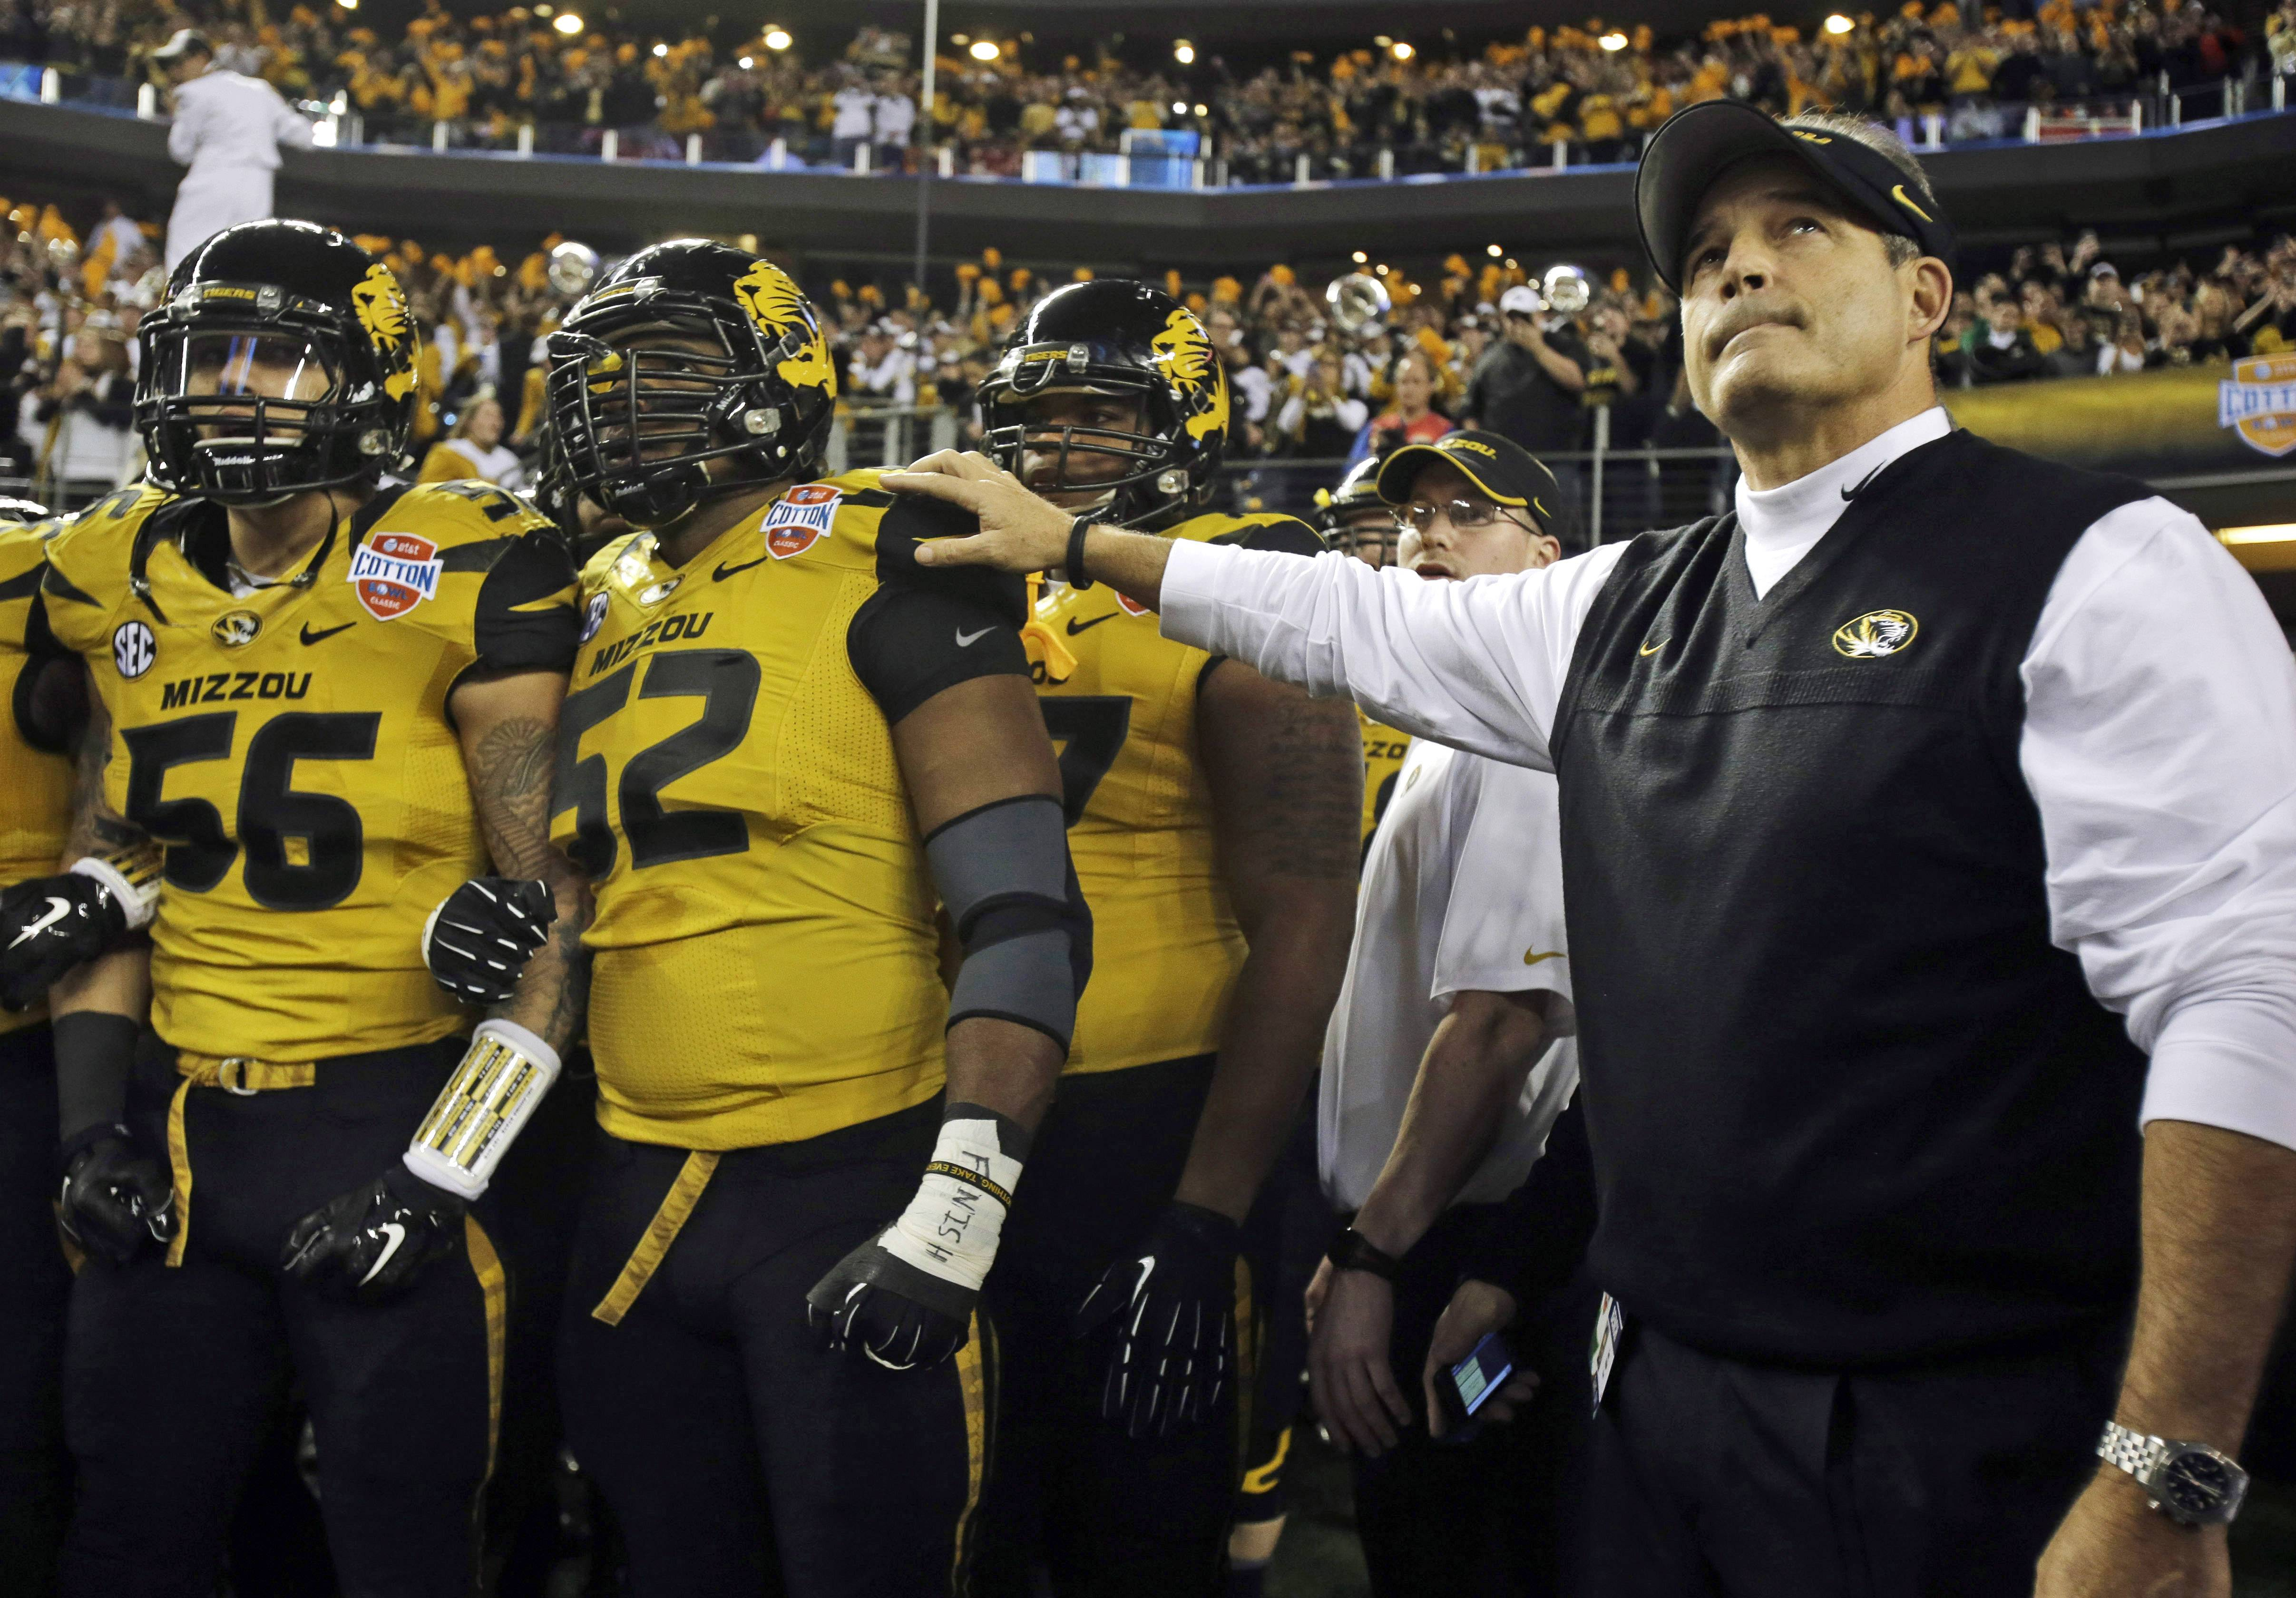 Missouri head coach Gary Pinkel, right, and players, including offensive linesman Robert Luce (56) and defensive lineman Michael Sam (52), prepare to take the field for the Cotton Bowl NCAA college football game against Oklahoma State on Jan. 3. Sam, Missouri's All-America defensive end came out to the entire country Sunday and could become the first openly gay player in America's most popular sport.